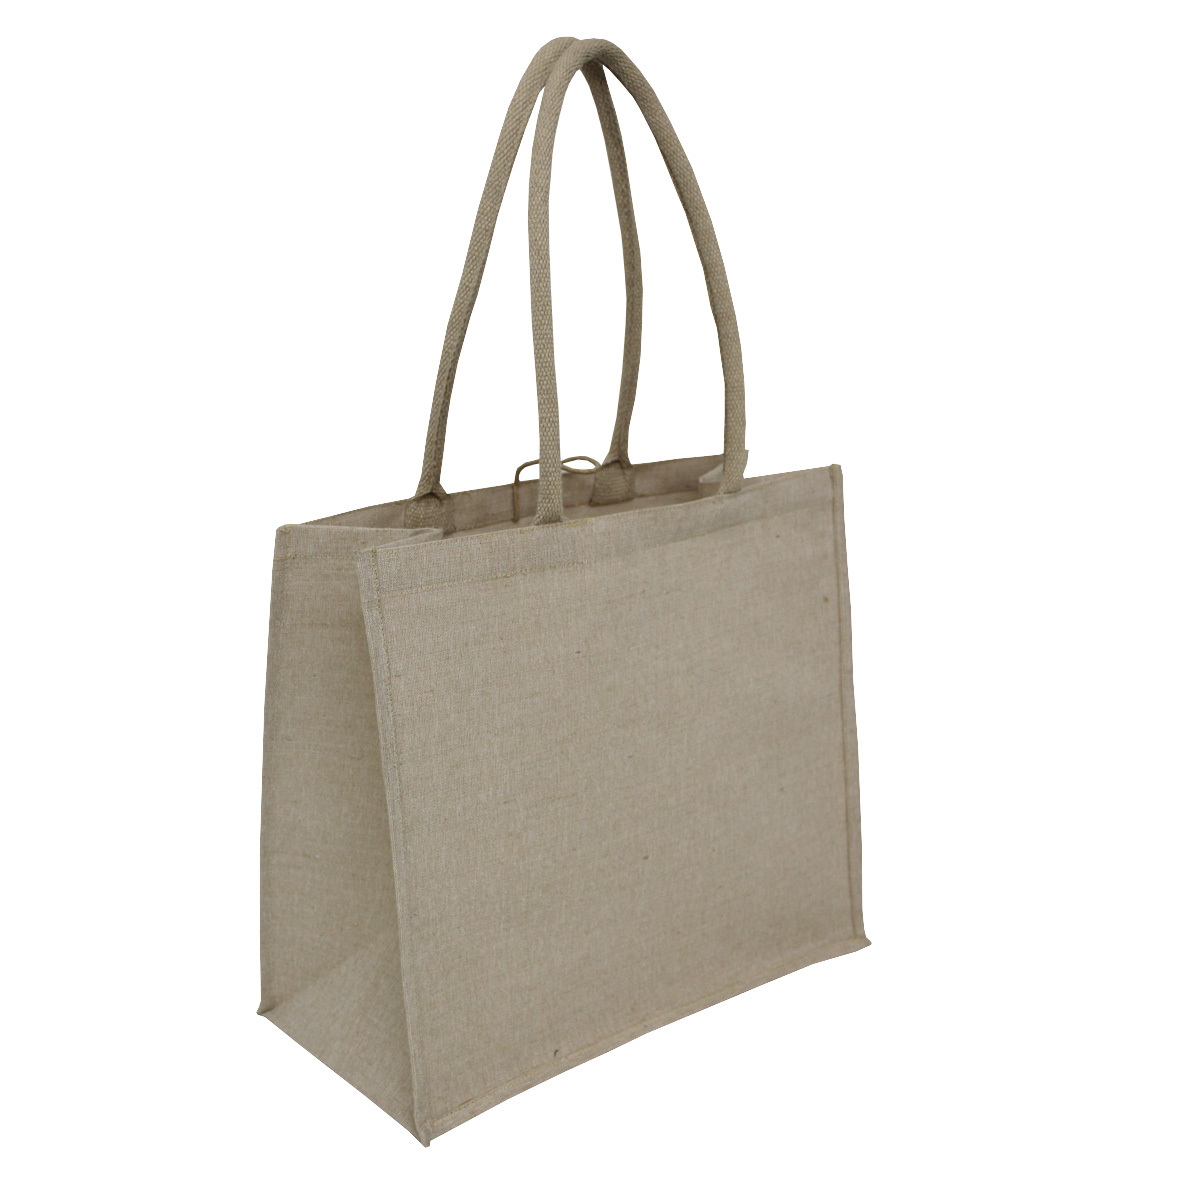 PP Laminated Juco Fabric Tote Bag With Padded Rope Handle & Hanging Loop